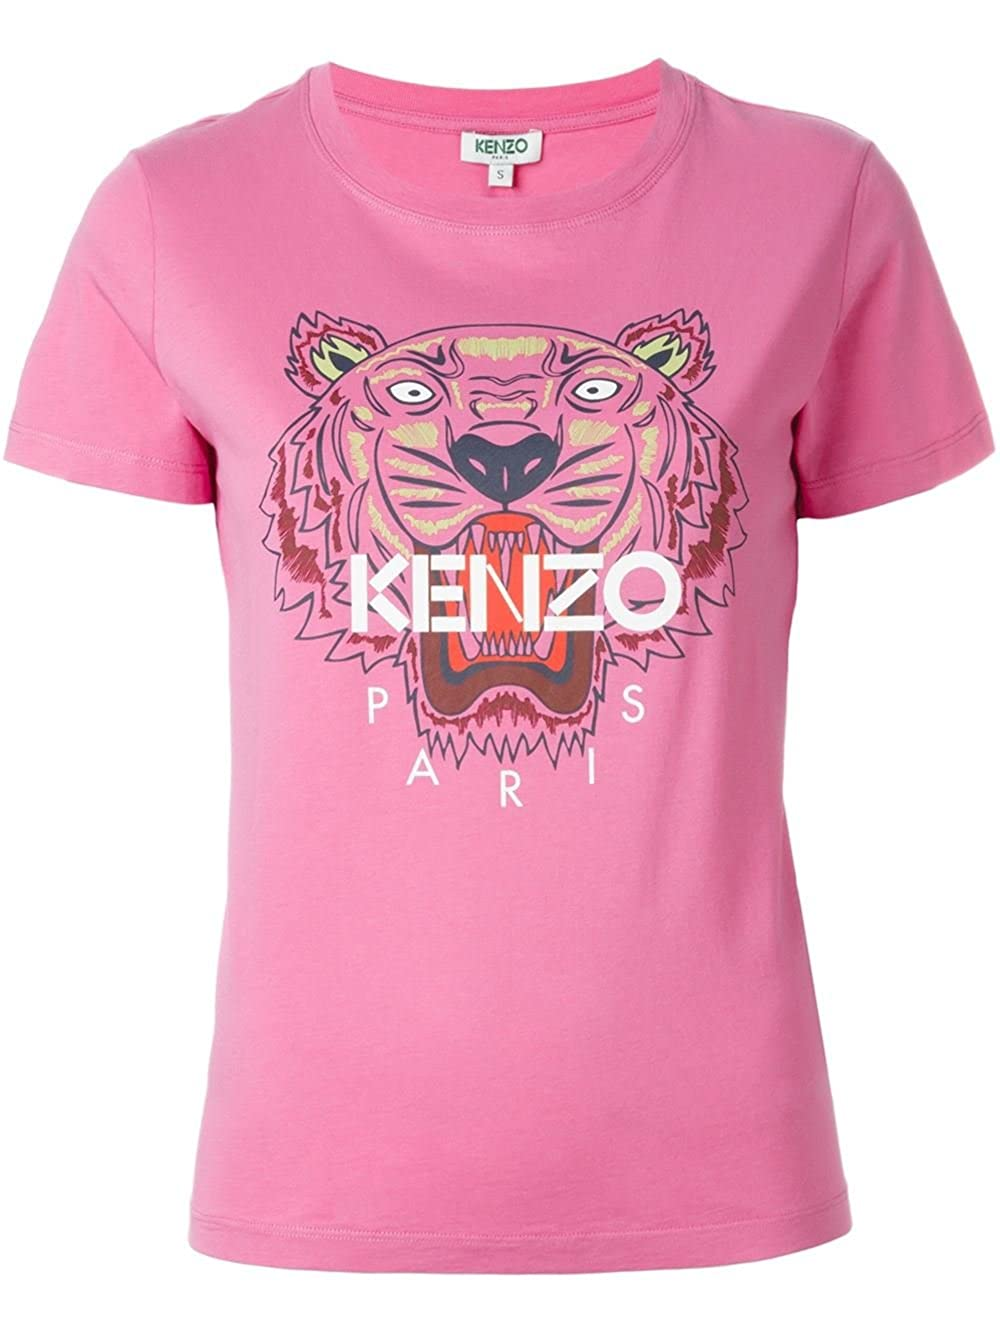 7711d68d Kenzo Women's Pink Tiger Head T-shirt wt Red Mouth (X-SMALL): Amazon.co.uk:  Clothing